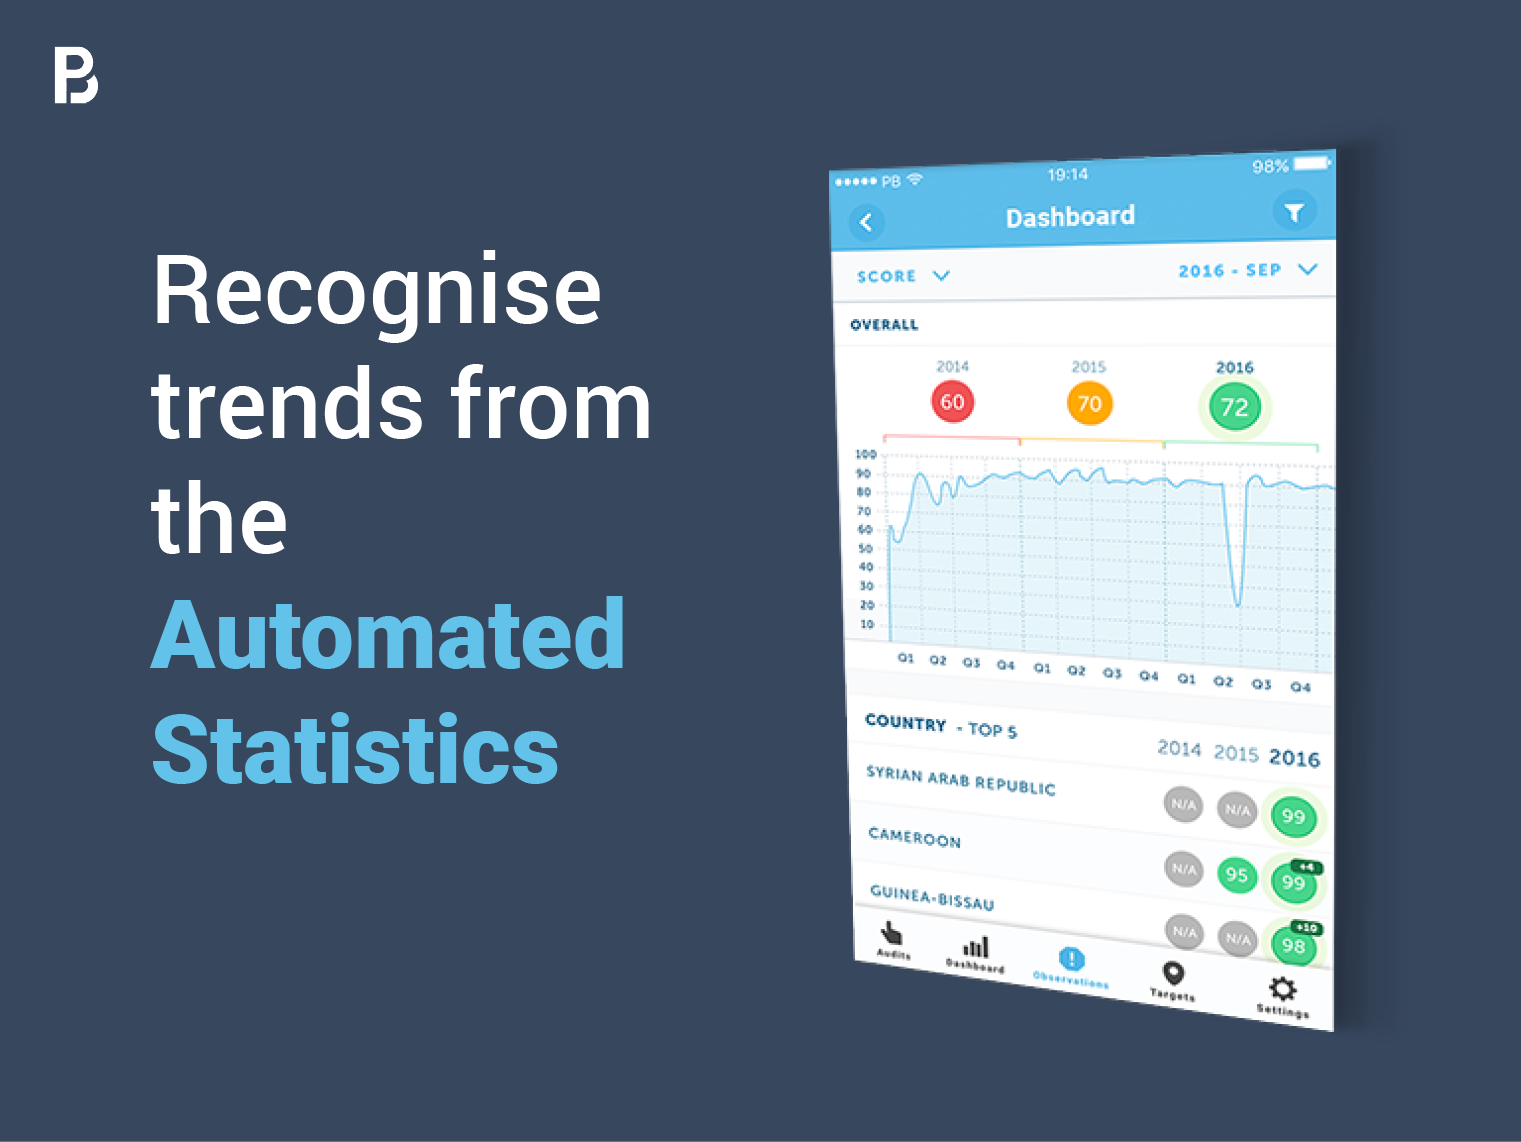 audits.io will automatically generate statistics when an audit is submitted, so you get an overview right away. This enables you to make better decisions on what areas, locations and sites to prioritise more in your organisation.